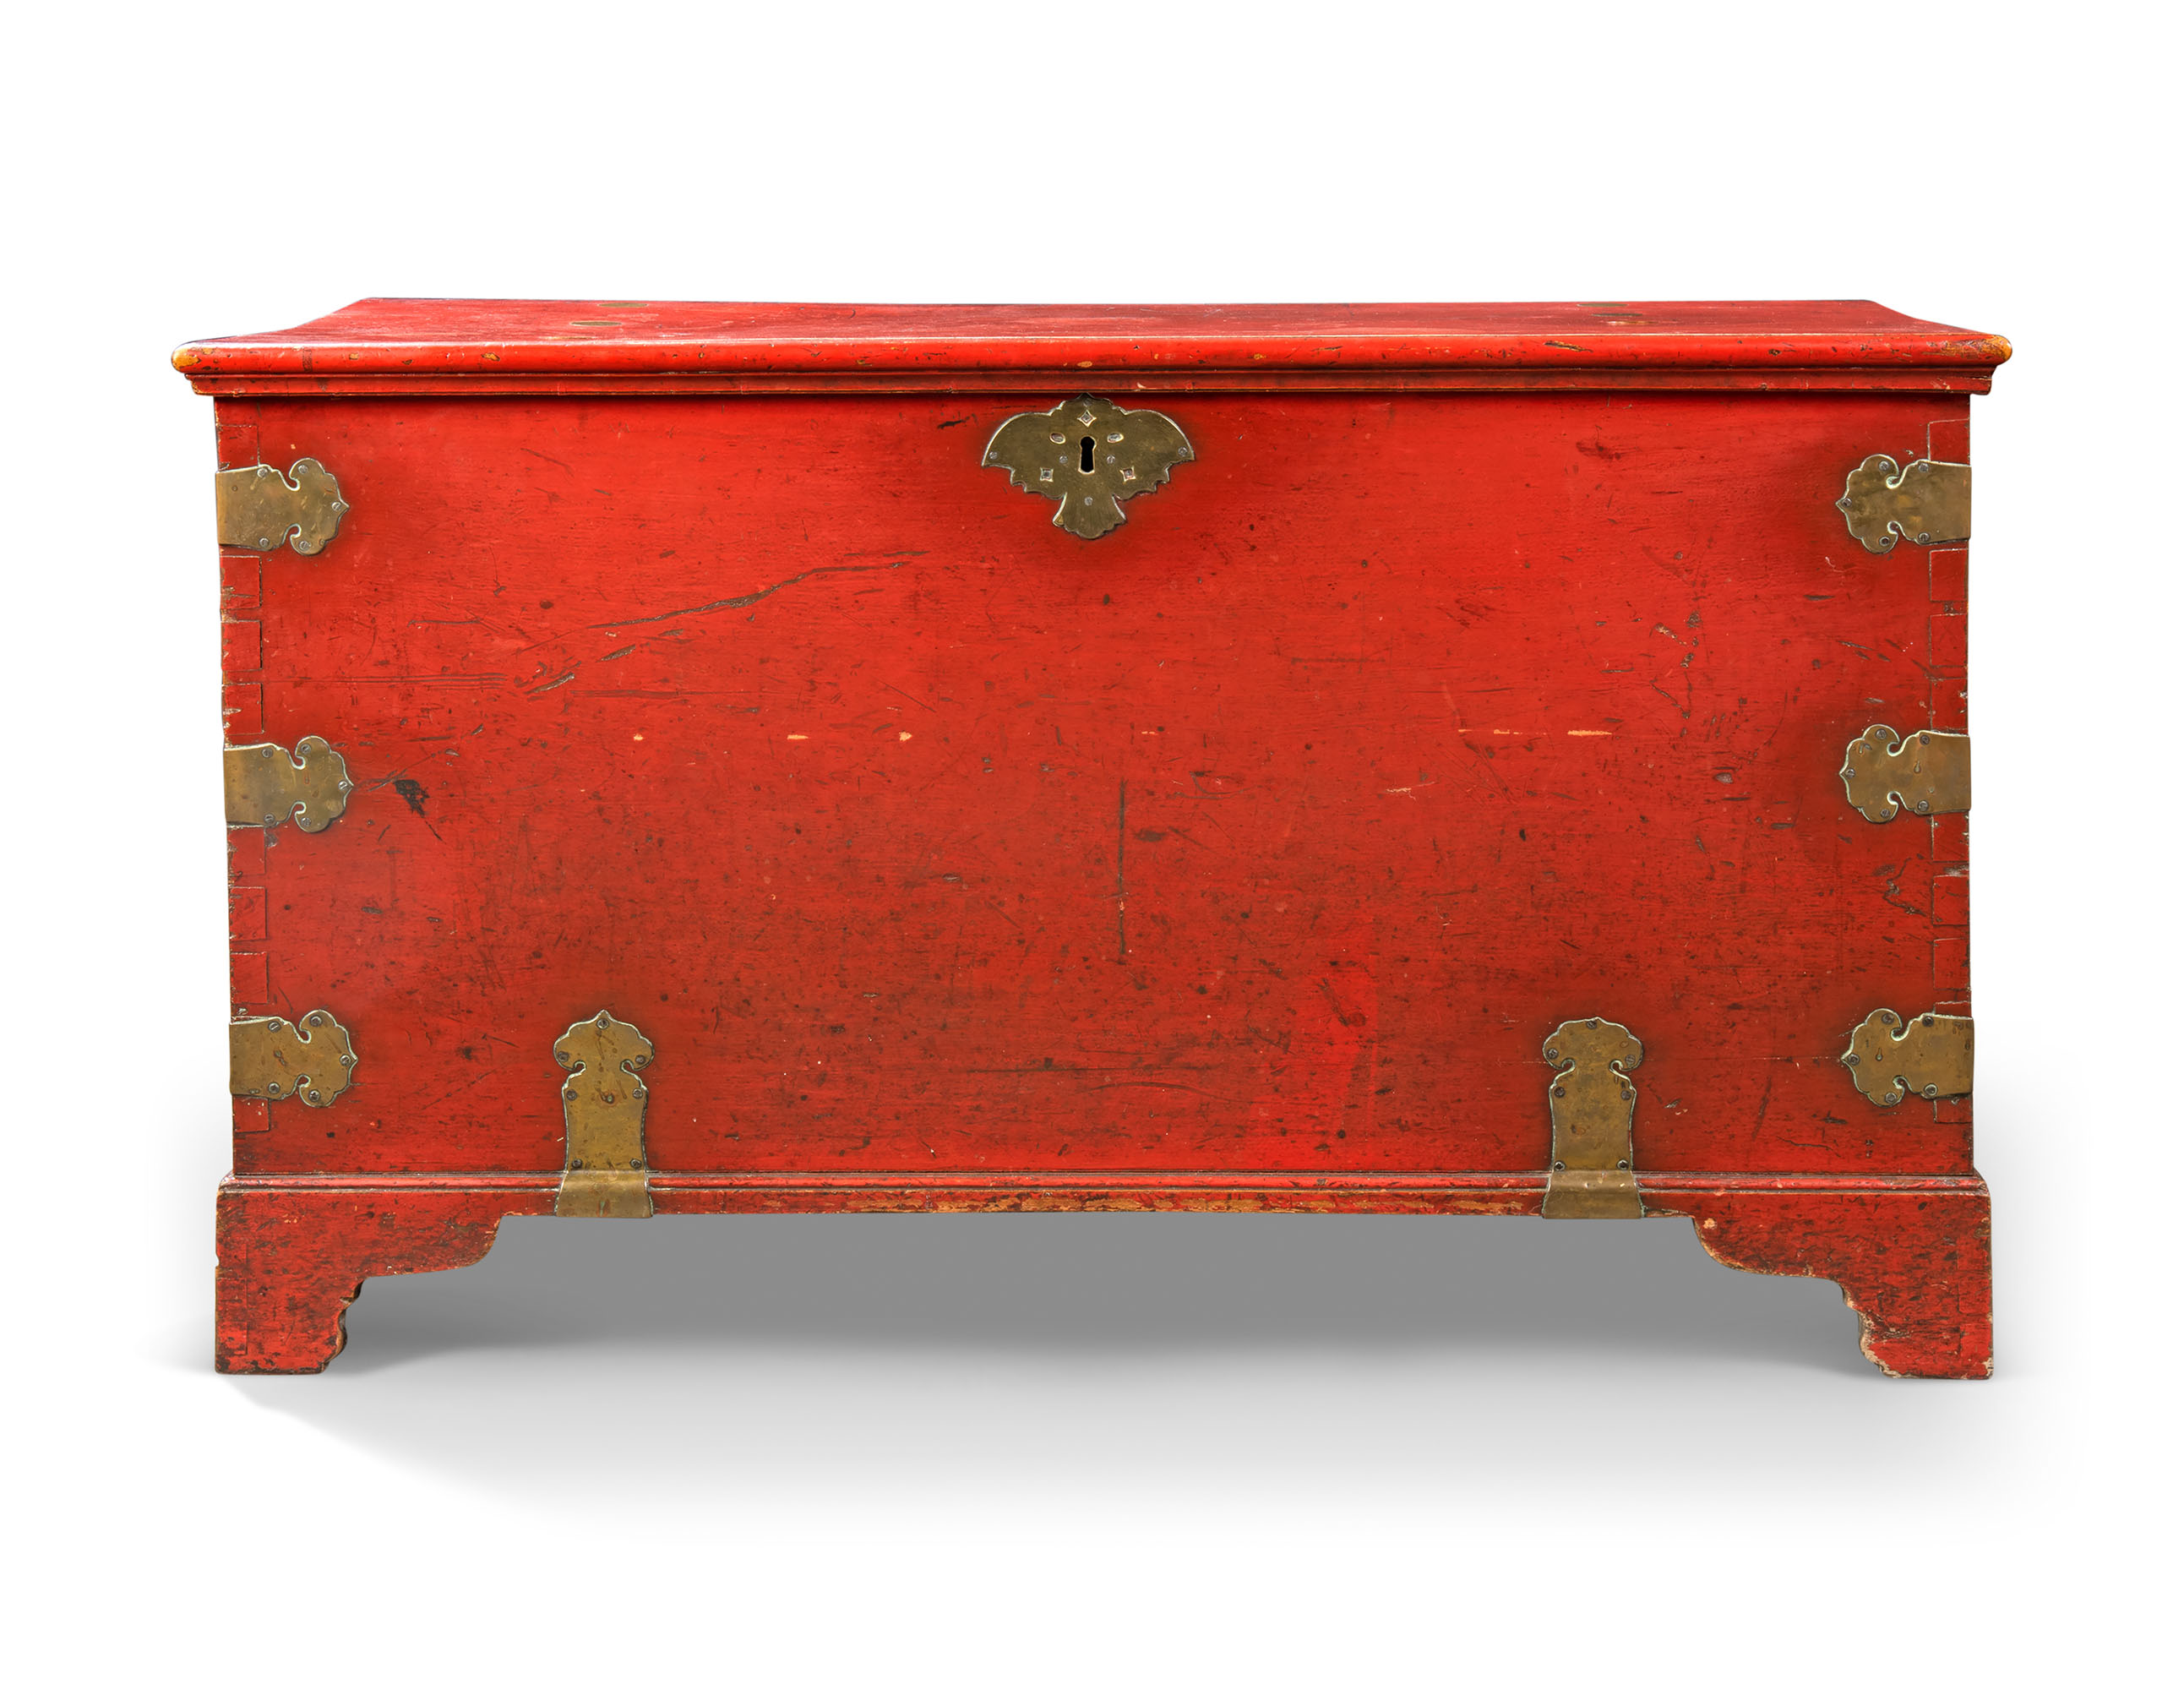 AN INDO-PORTUGUESE BRASS-MOUNTED AND RED-LACQUERED TEAK CHEST